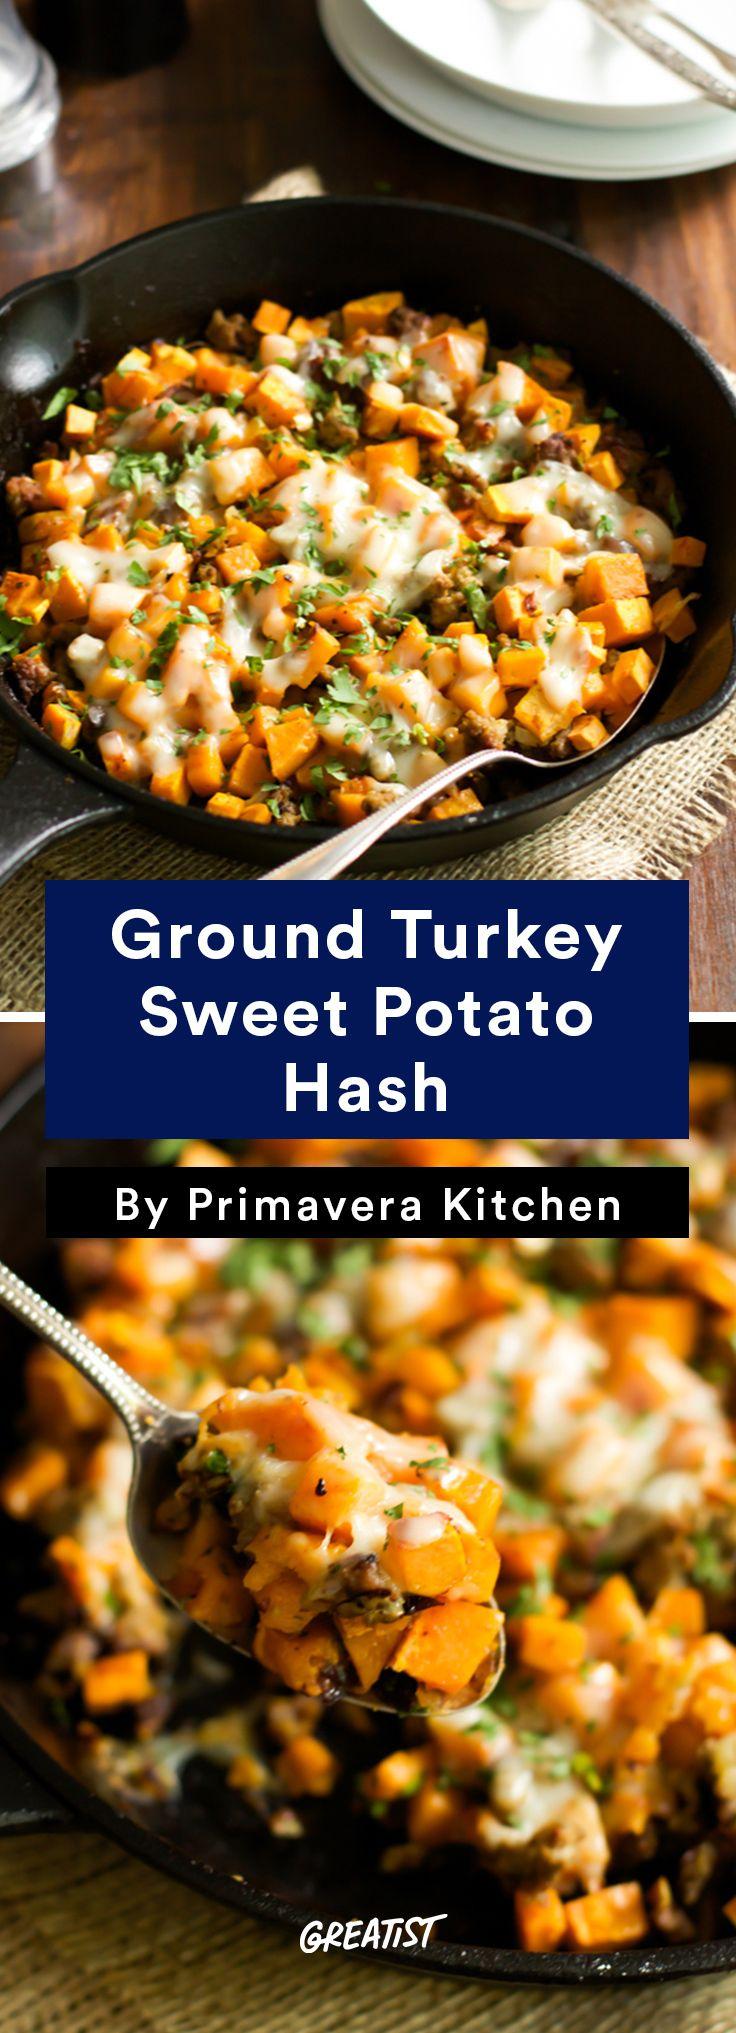 5. Ground Turkey Sweet Potato Hash #healthy #sweetpotato #hash #recipes http://greatist.com/eat/sweet-potato-hash-recipes-for-breakfast-or-dinner